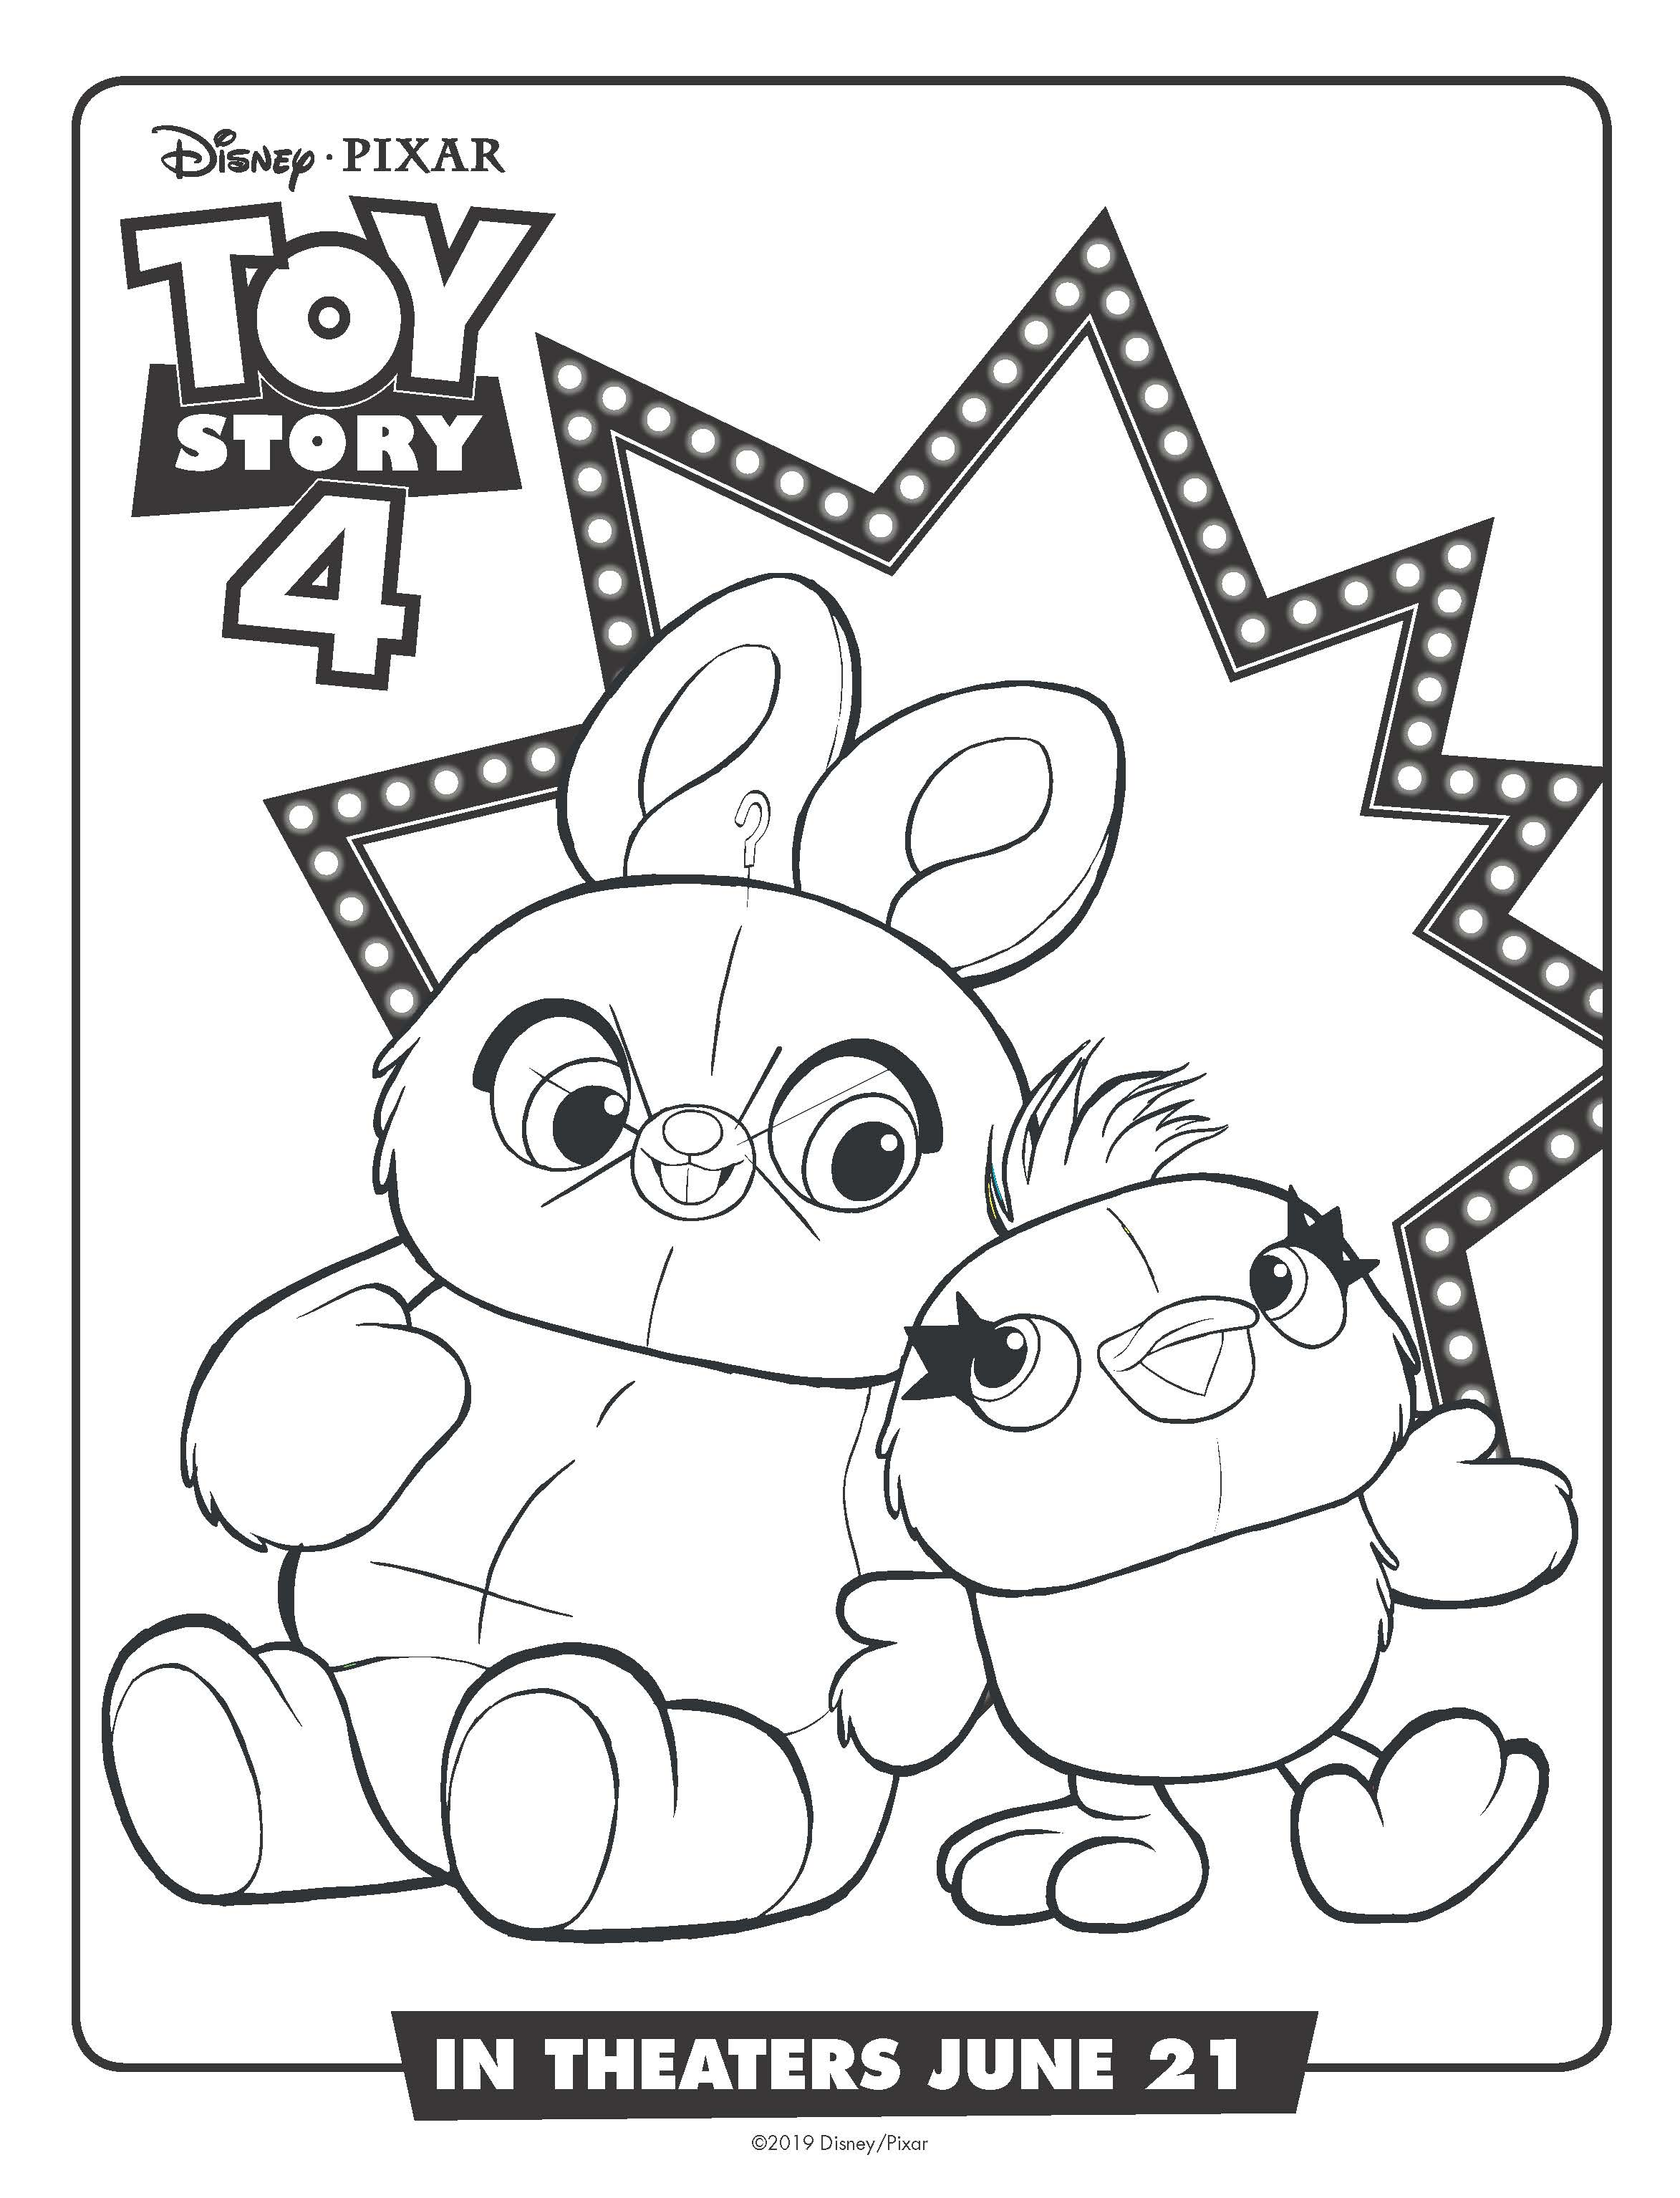 10+ Free Toy Story 4 Coloring Pages and Printables ...